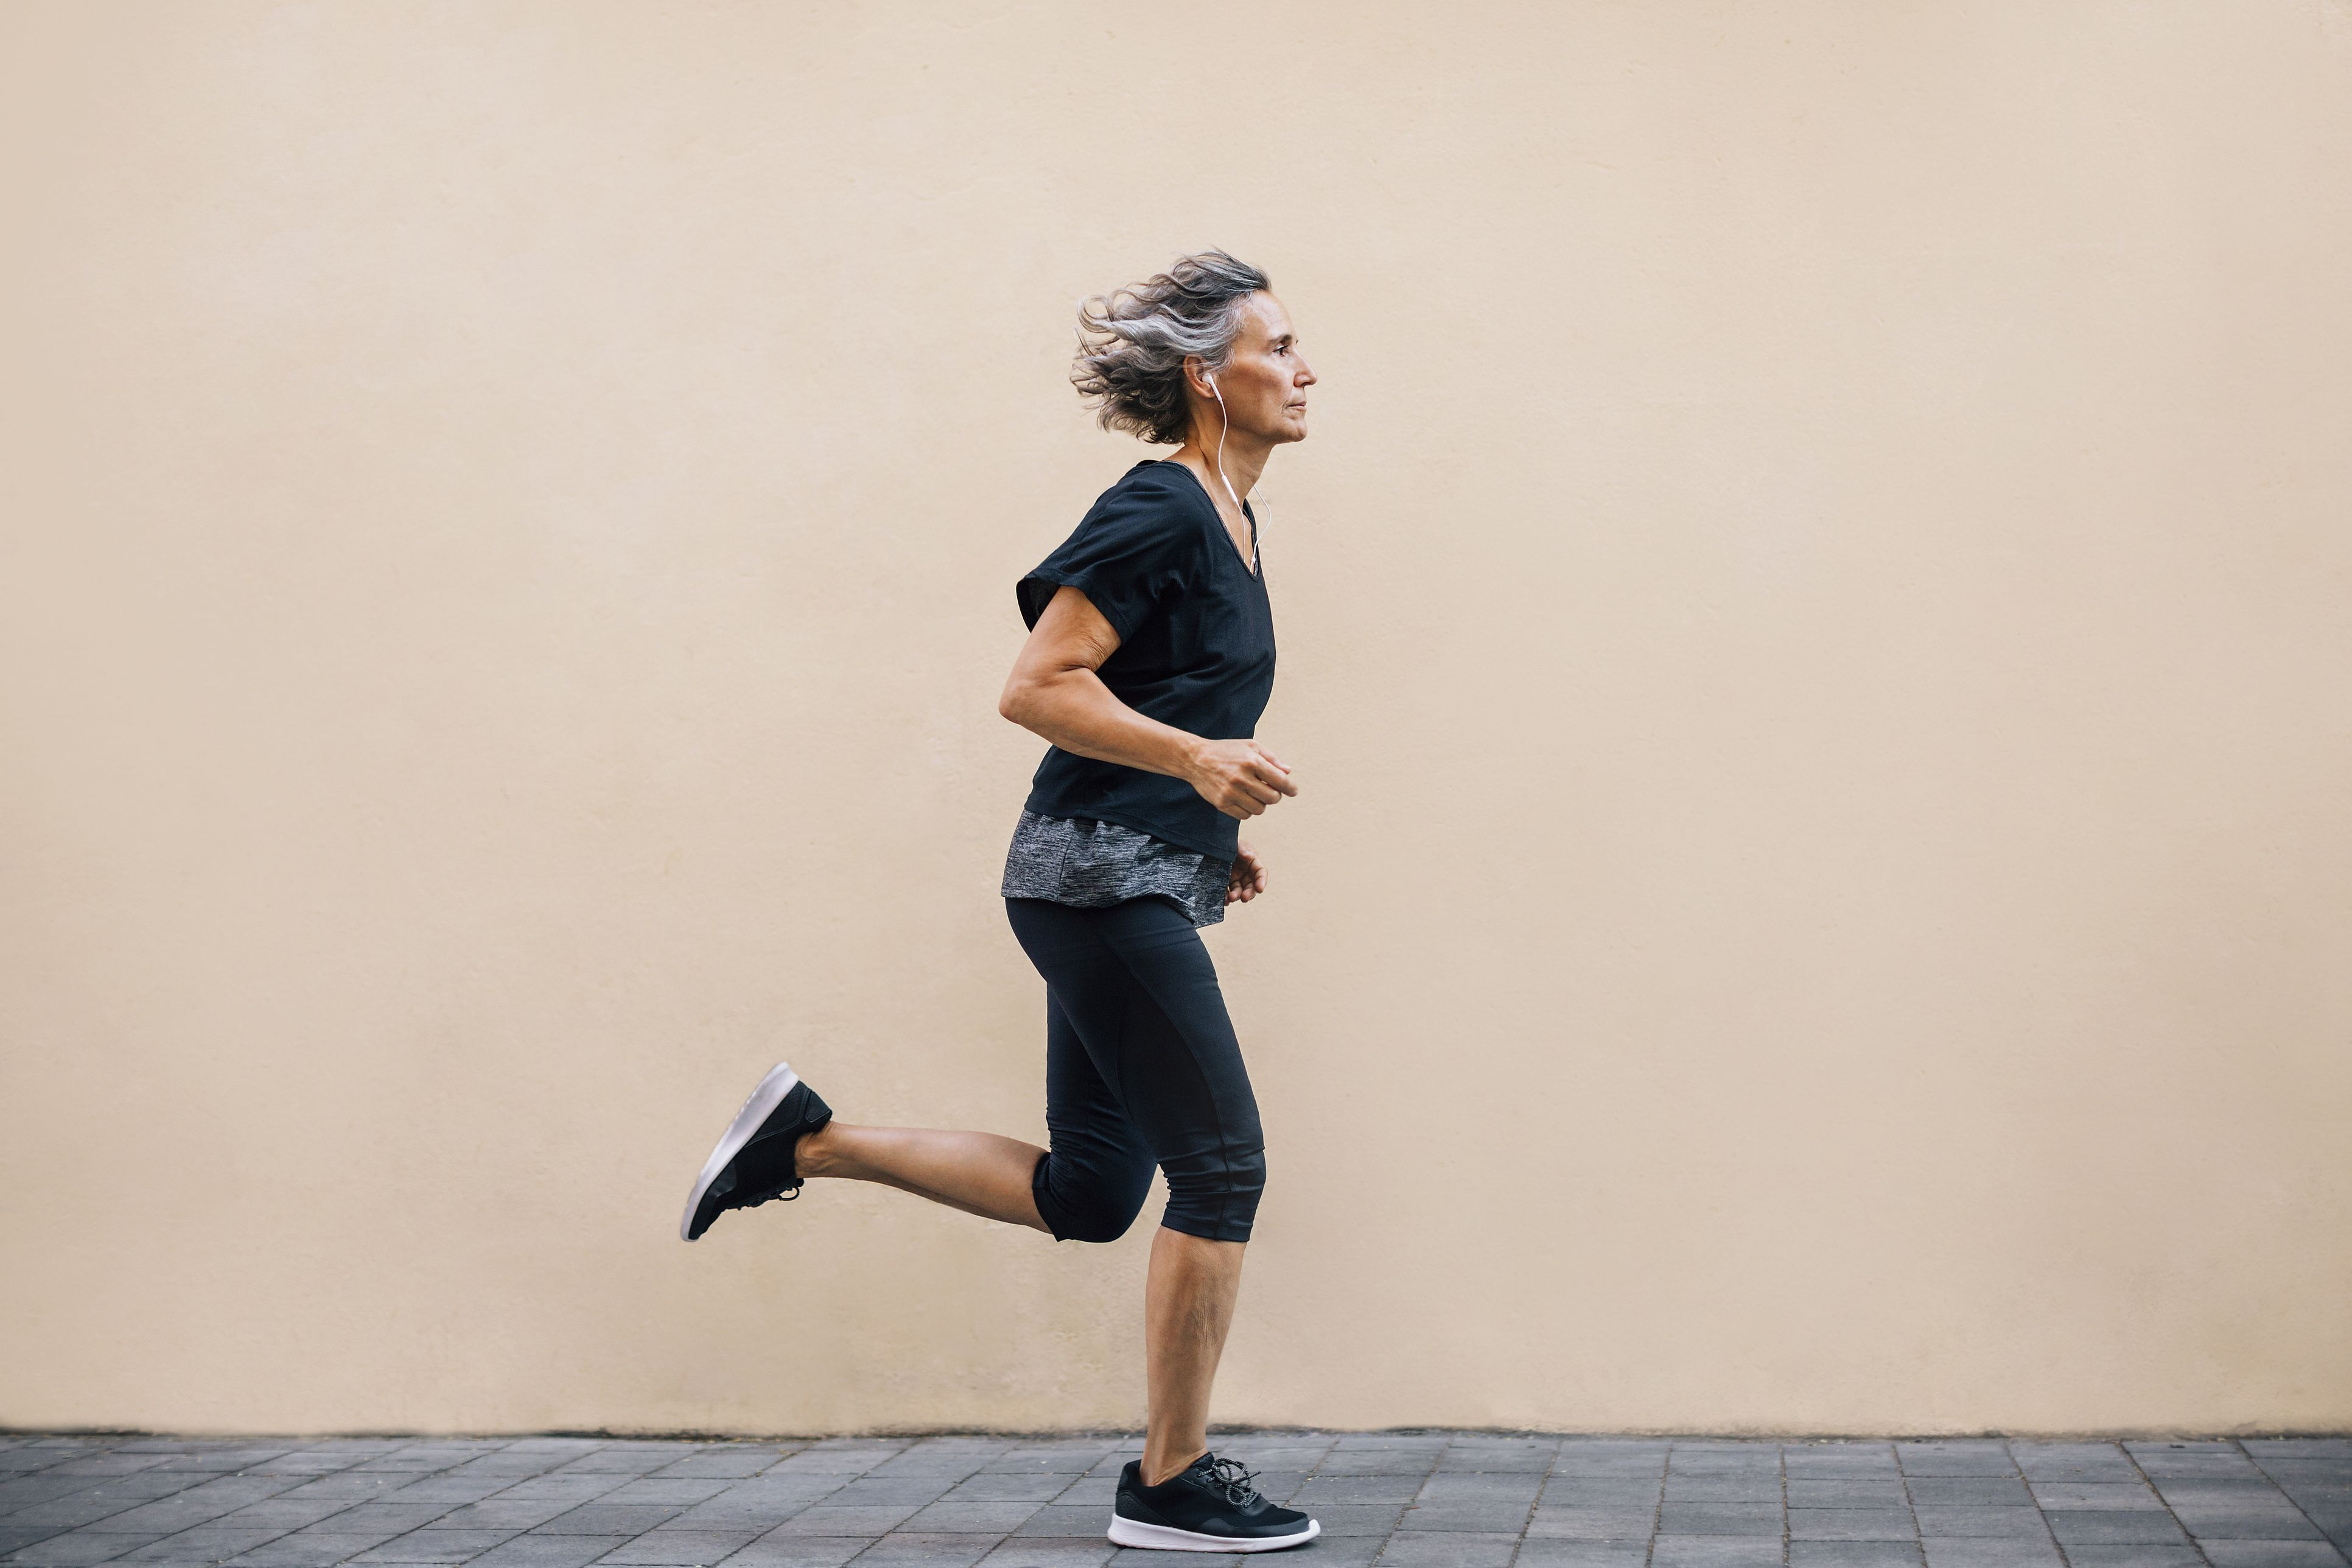 Side view of woman jogging on footpath against wall